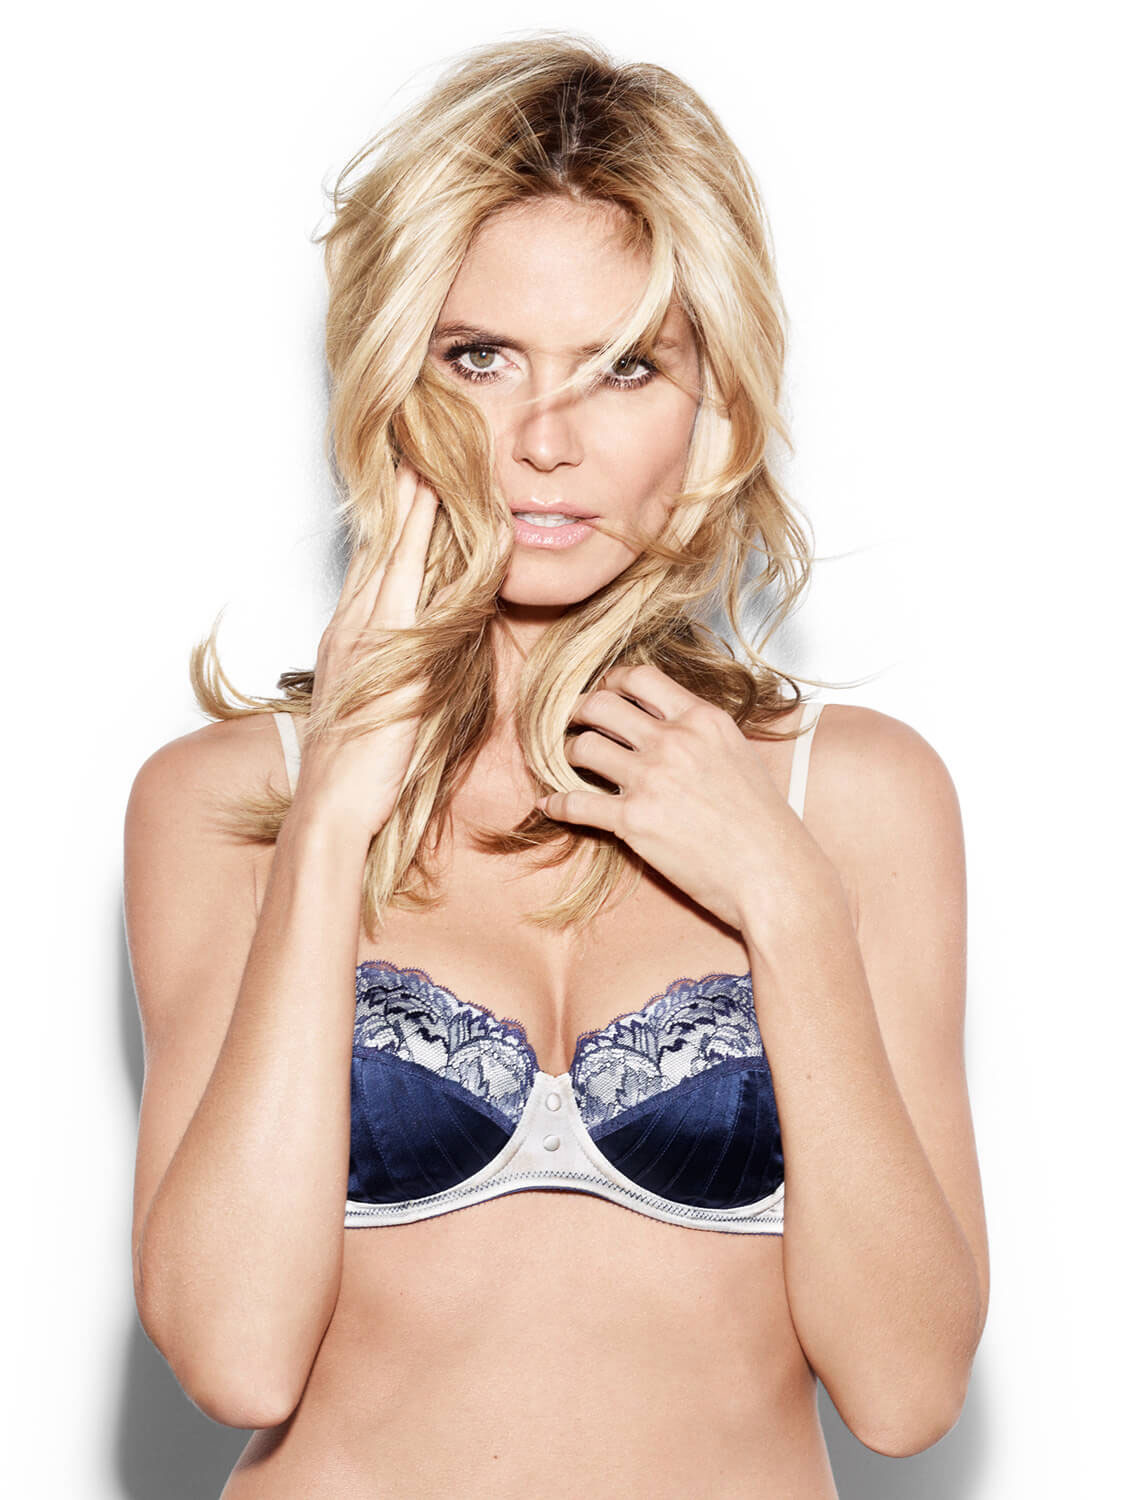 Heidi Klum for Heidi Klum Intimates